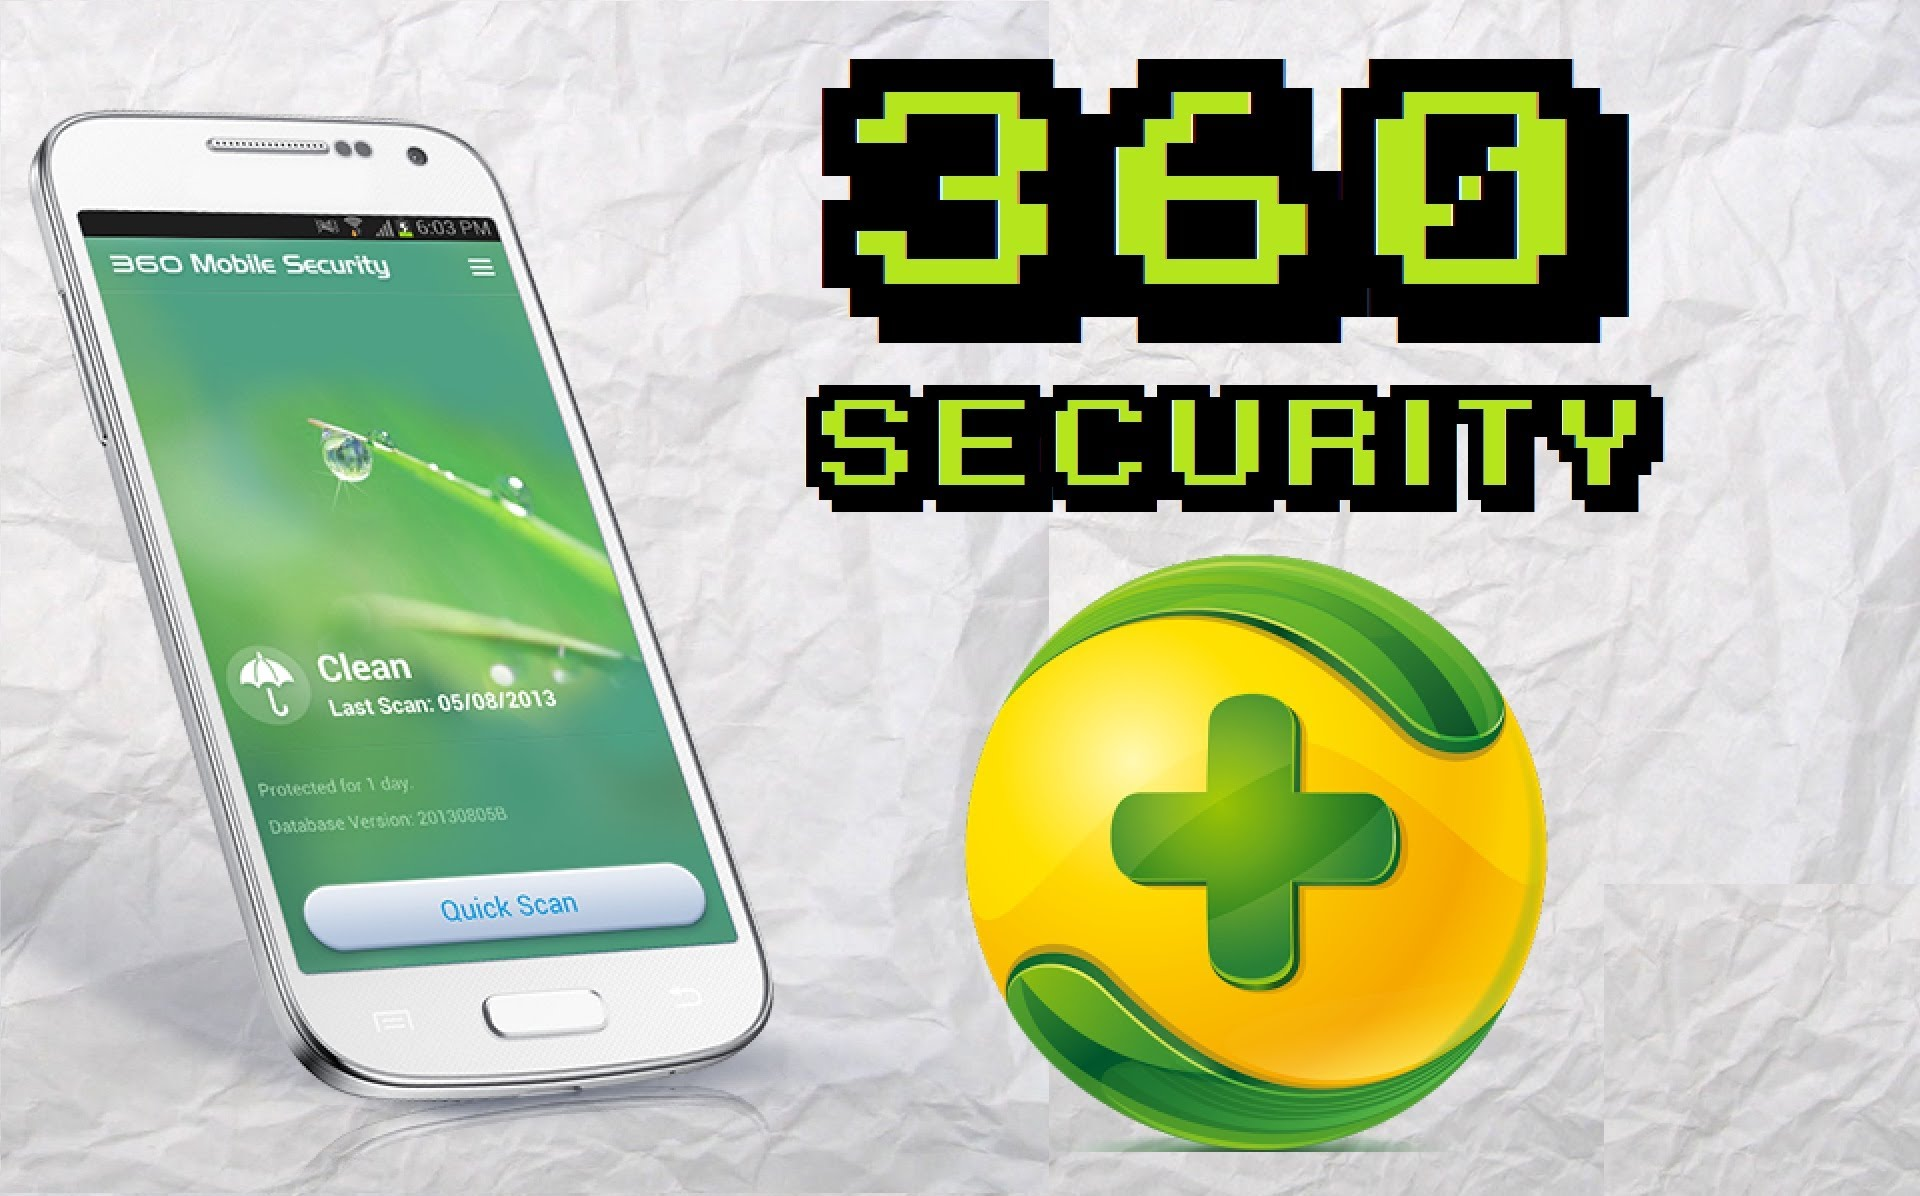 Download 360 total security free antivirus for pc, mac & android.